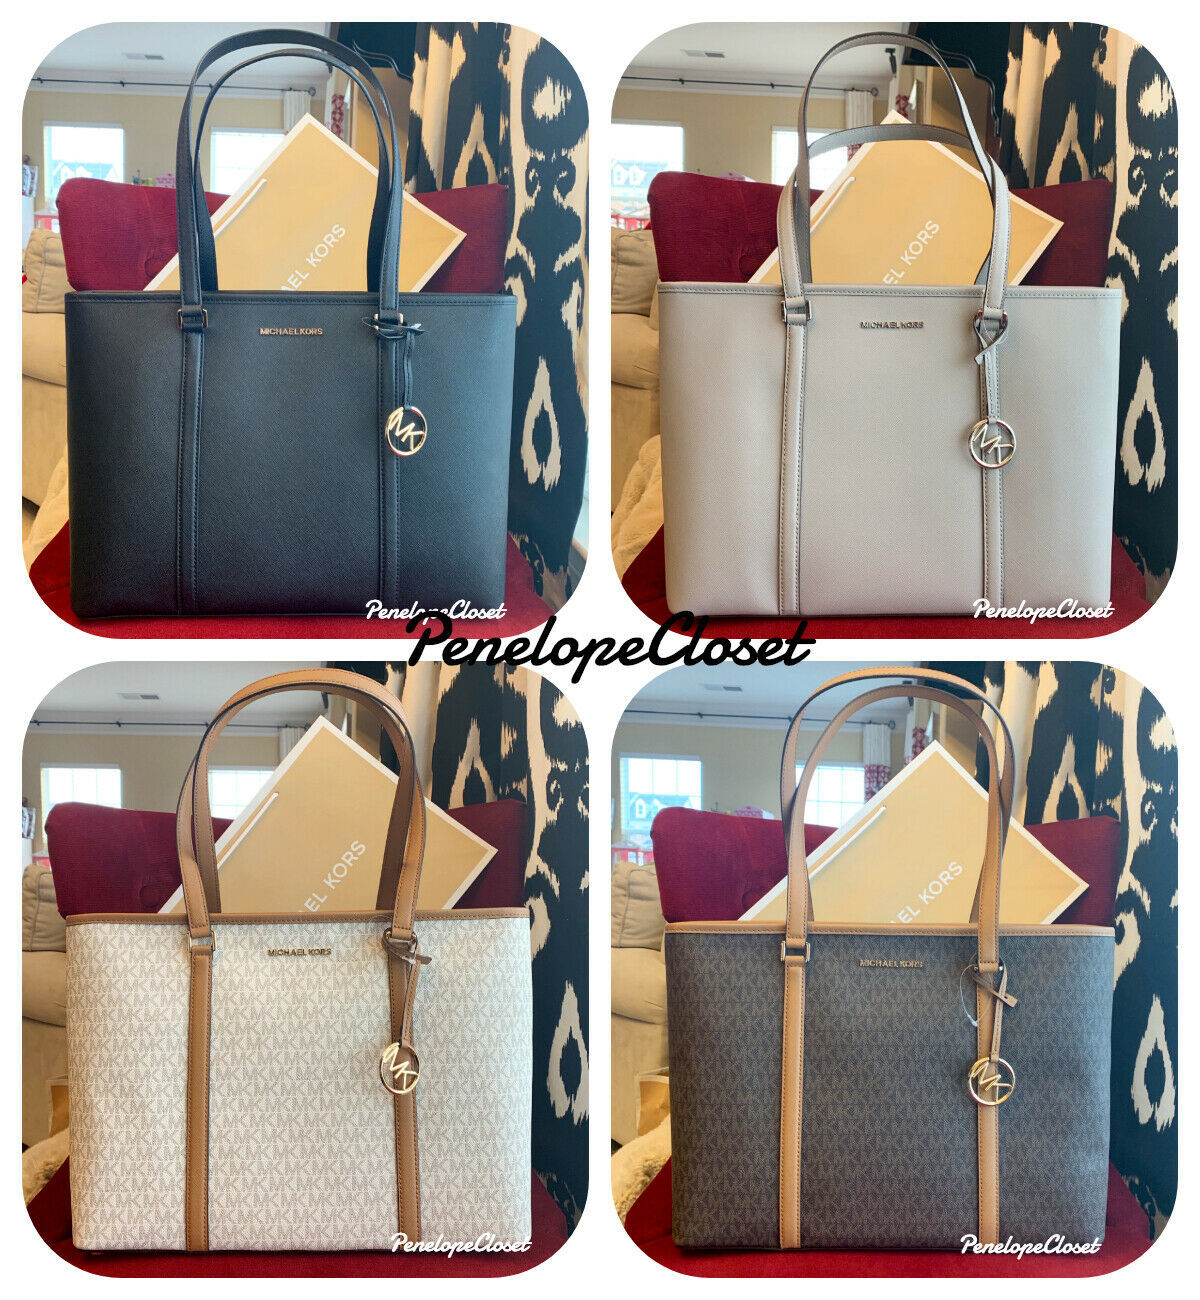 4cfcd4e97b NWT MICHAEL KORS SADY LARGE MULTIFUNCTION TOP ZIP TOTE BAG IN VARIOUS -   117.88 -  178.88